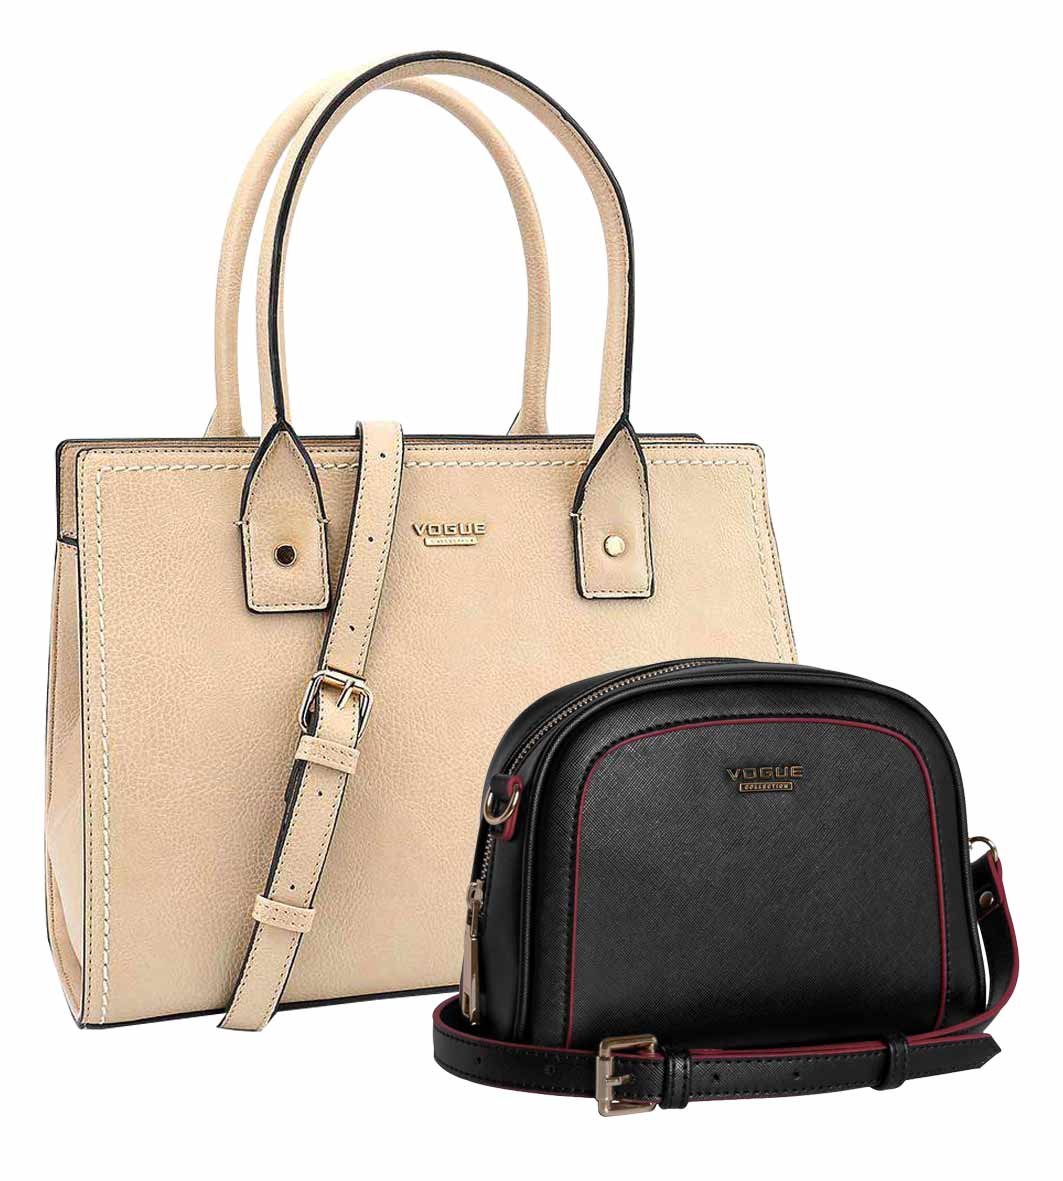 827ecb266 Kit Bolsa Feminina Vogue